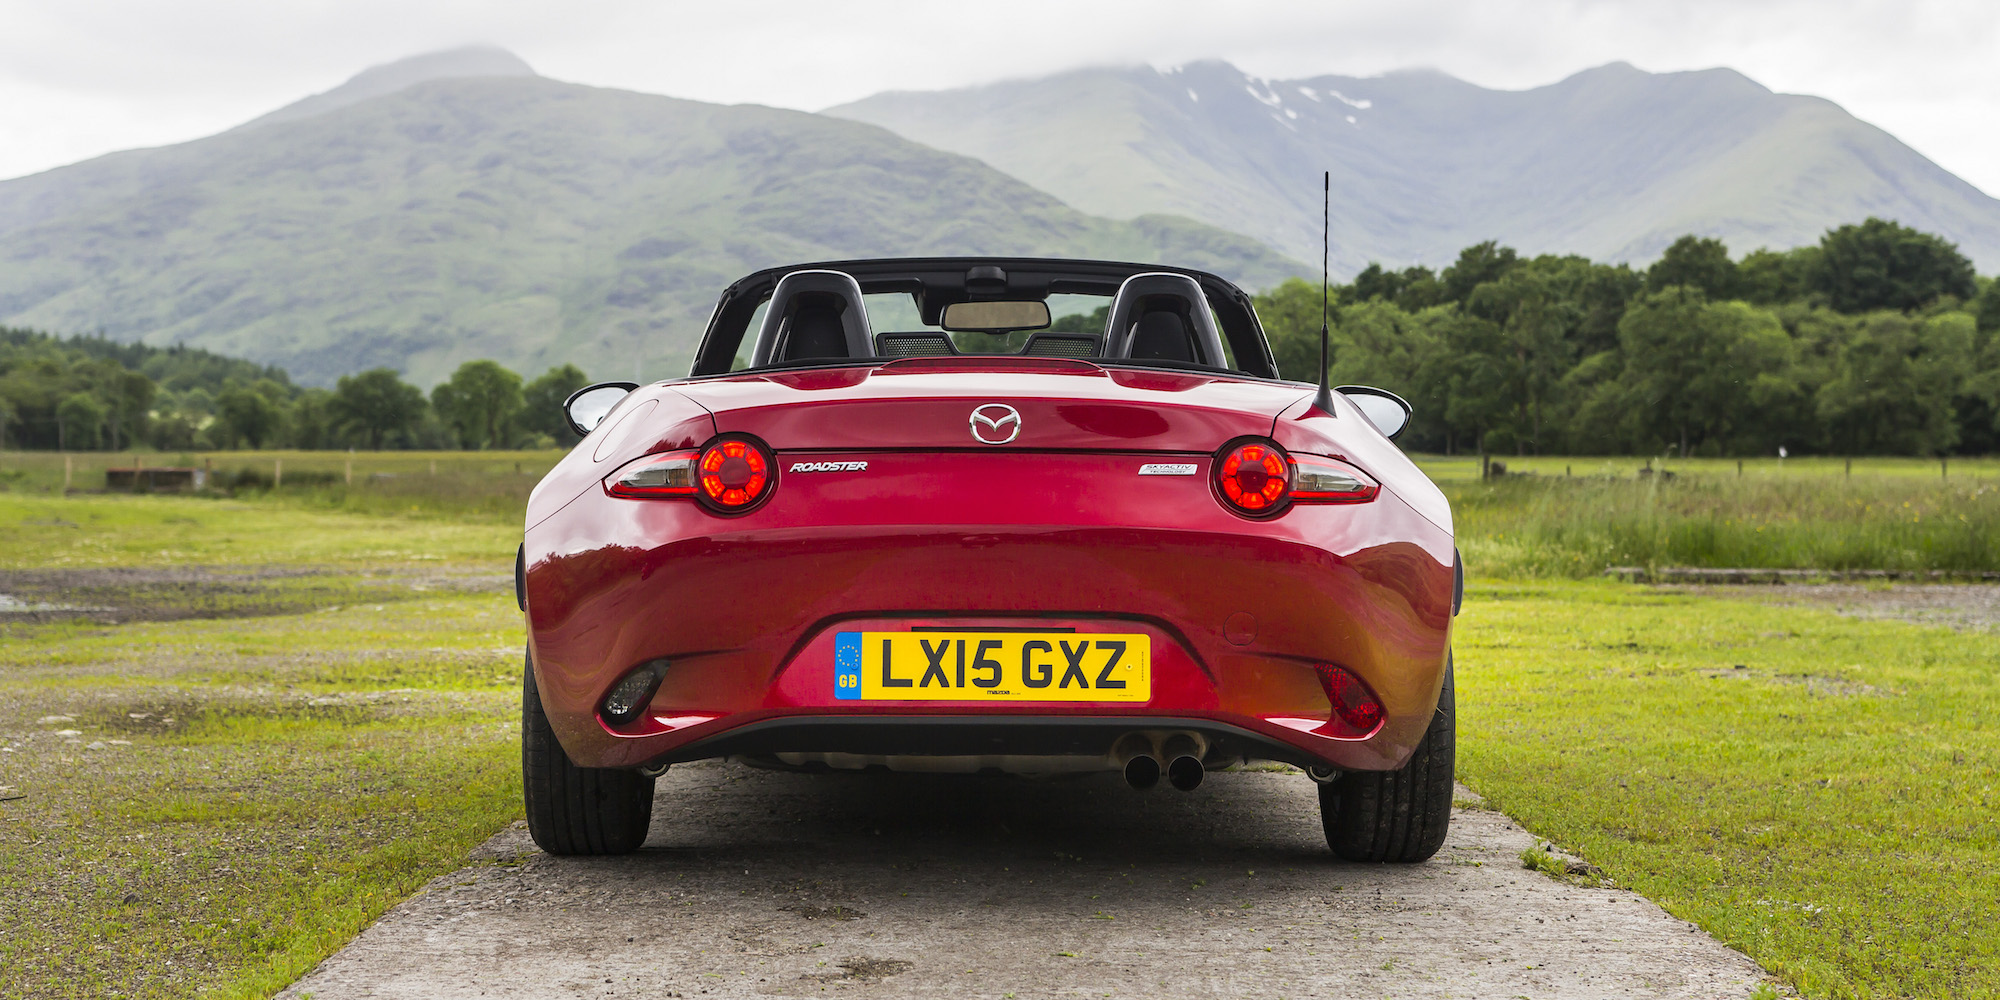 2016 Mazda Mx 5 Rear End Design (View 5 of 31)